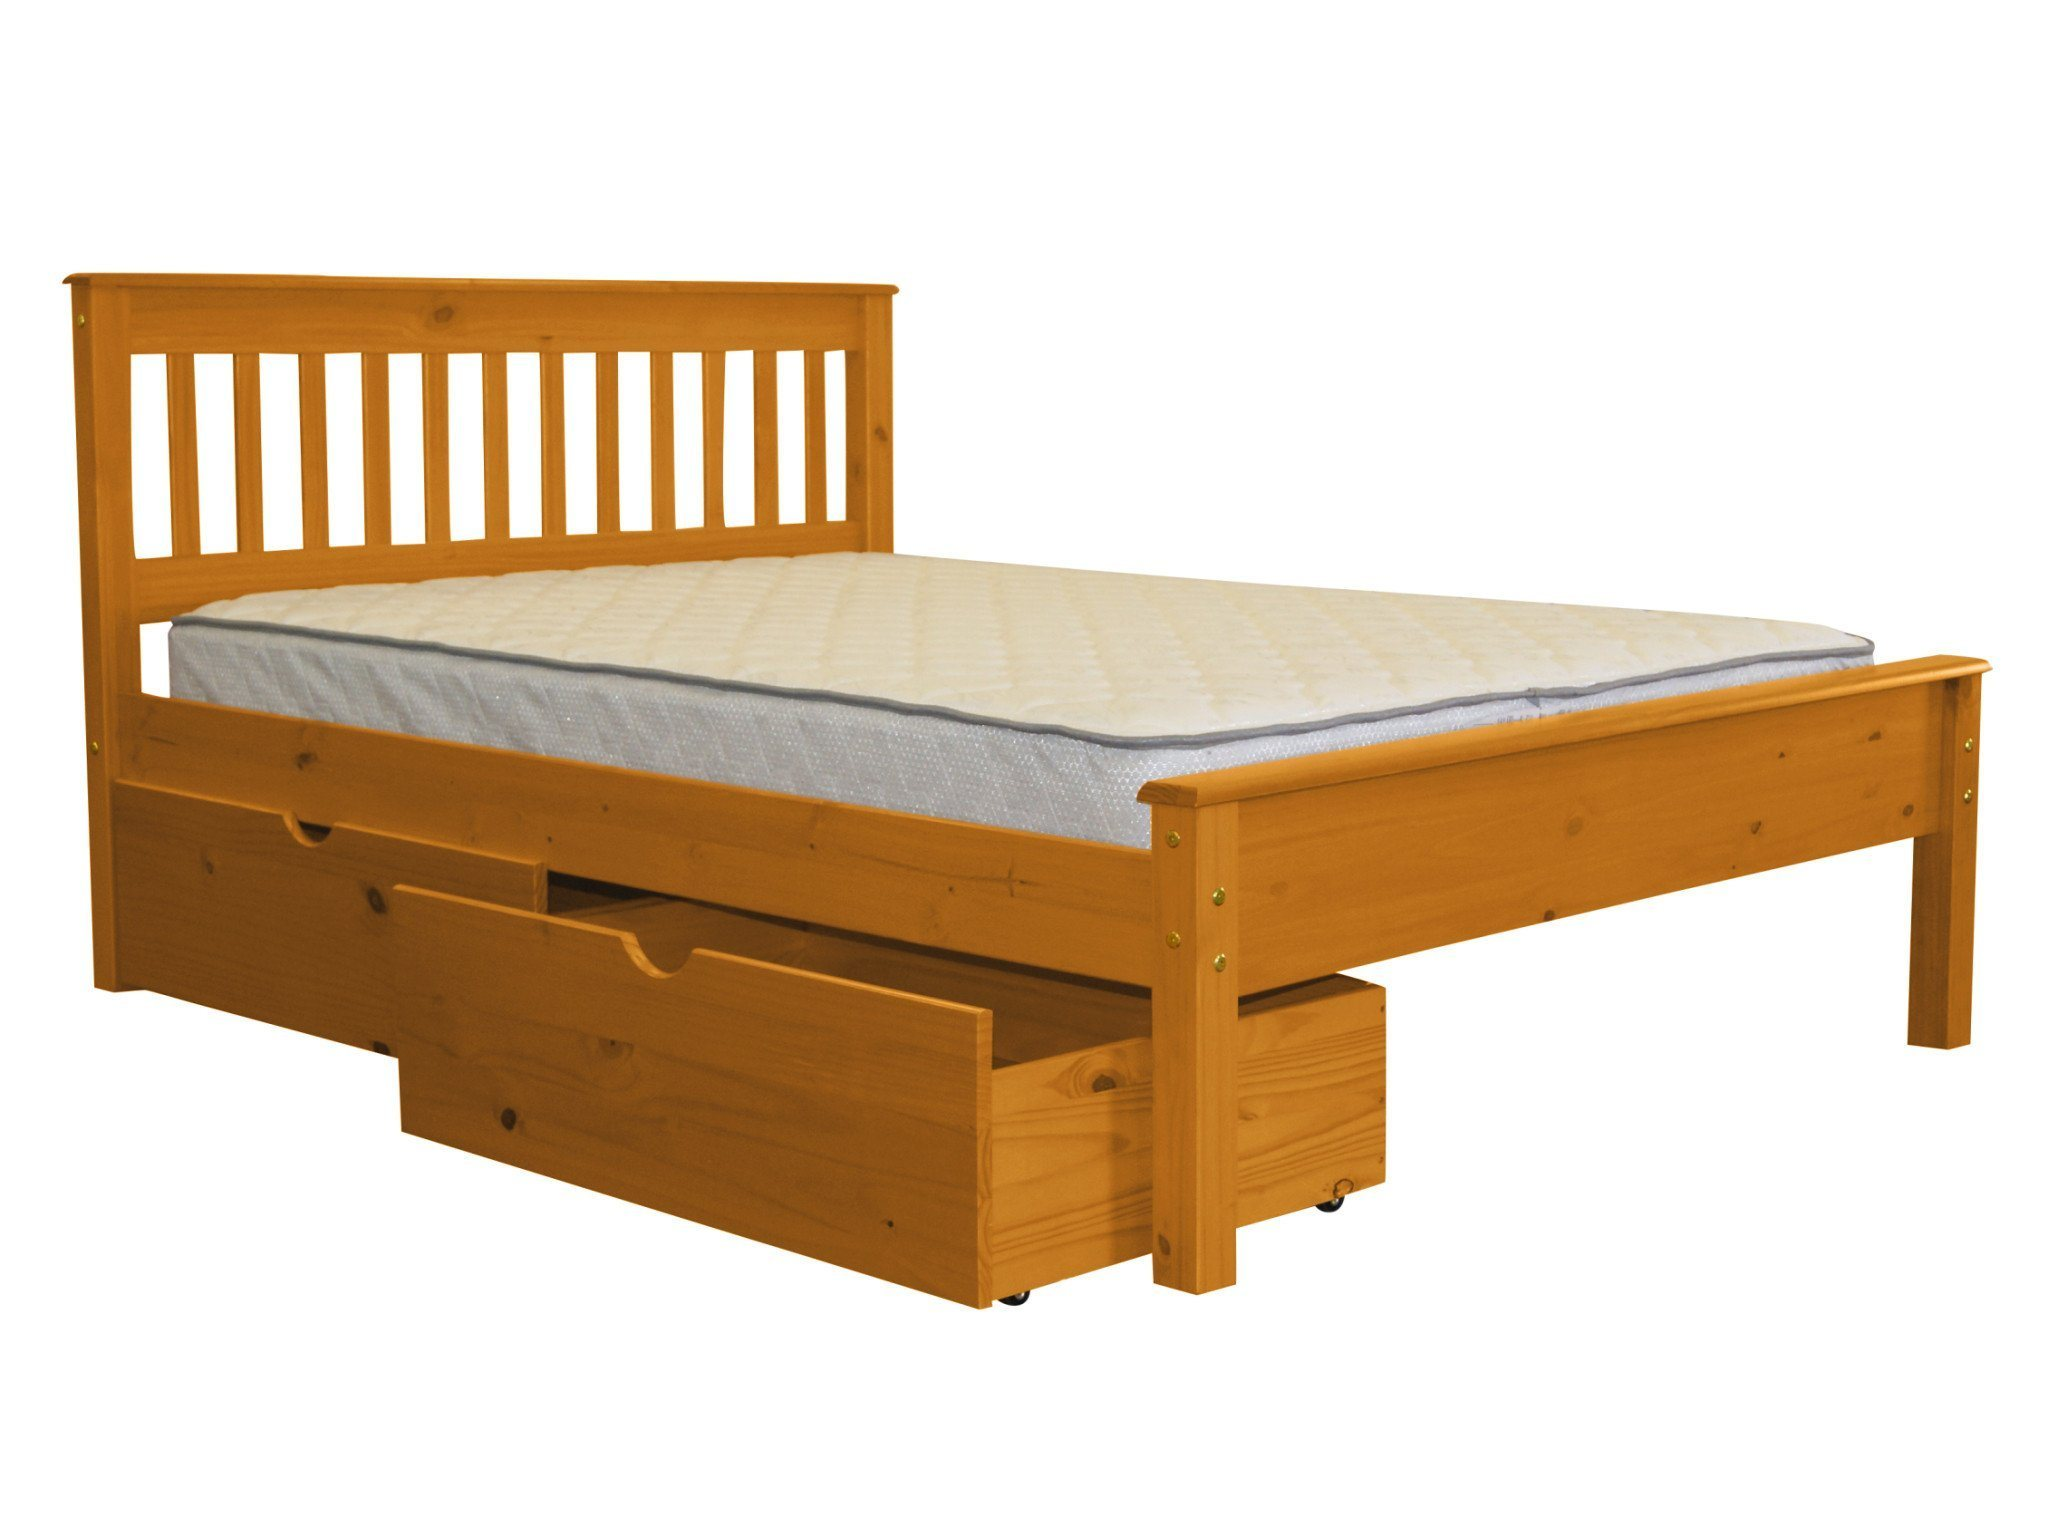 Bedz King Mission Style Full Bed With 2 Under Bed Drawers, Honey    Walmart.com